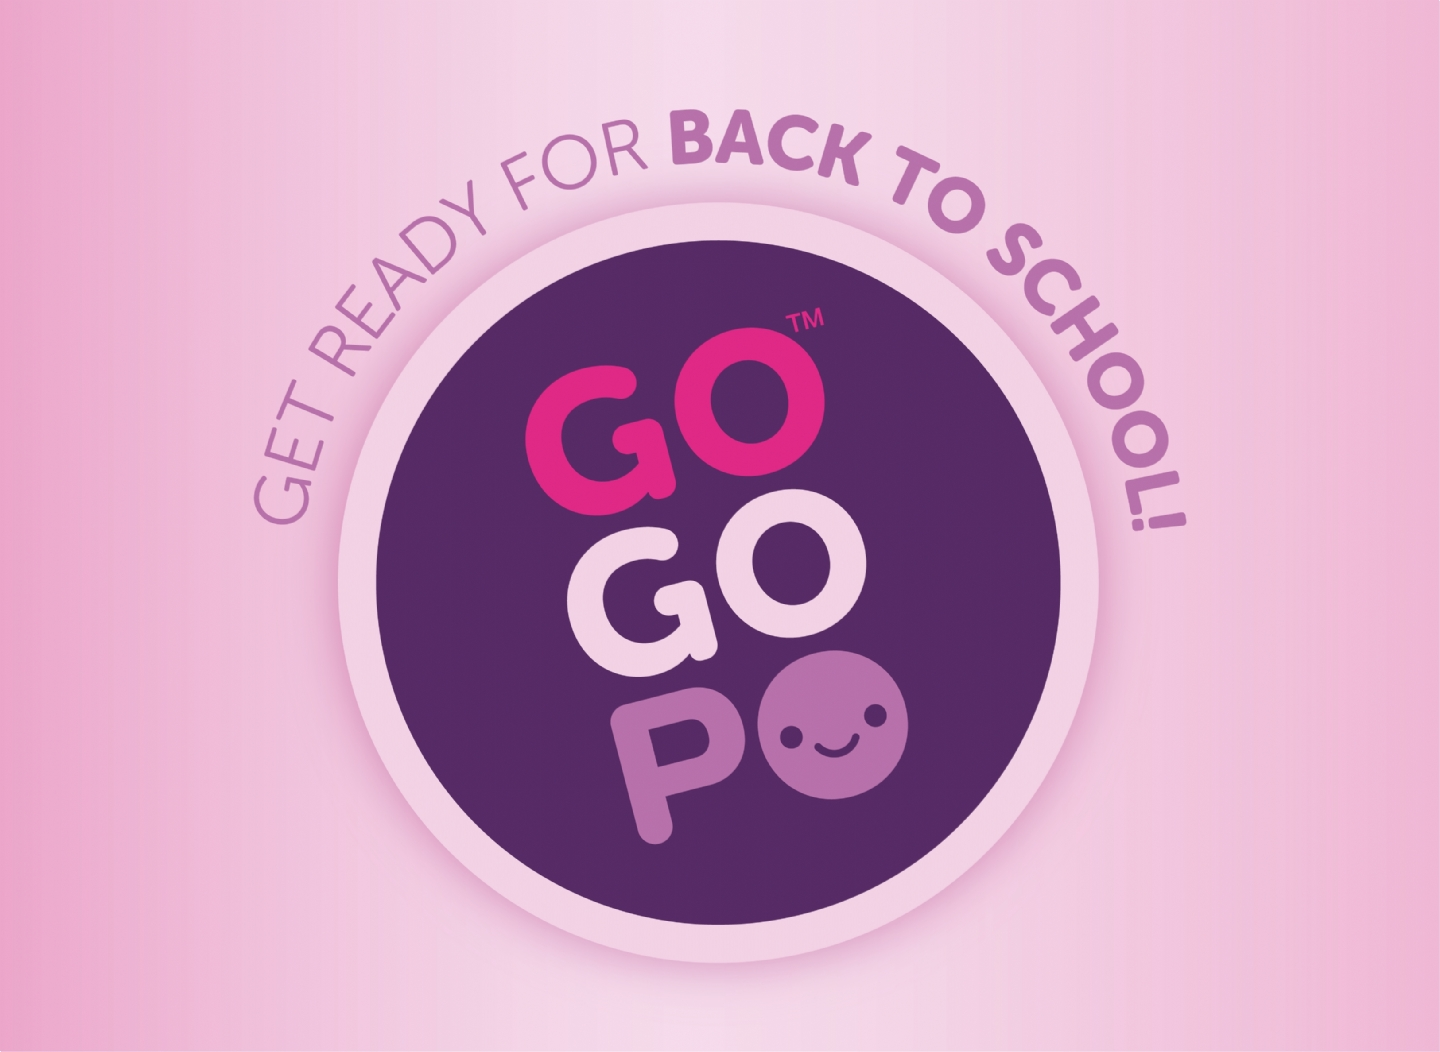 Get ready for back to school with... GOGOPO!